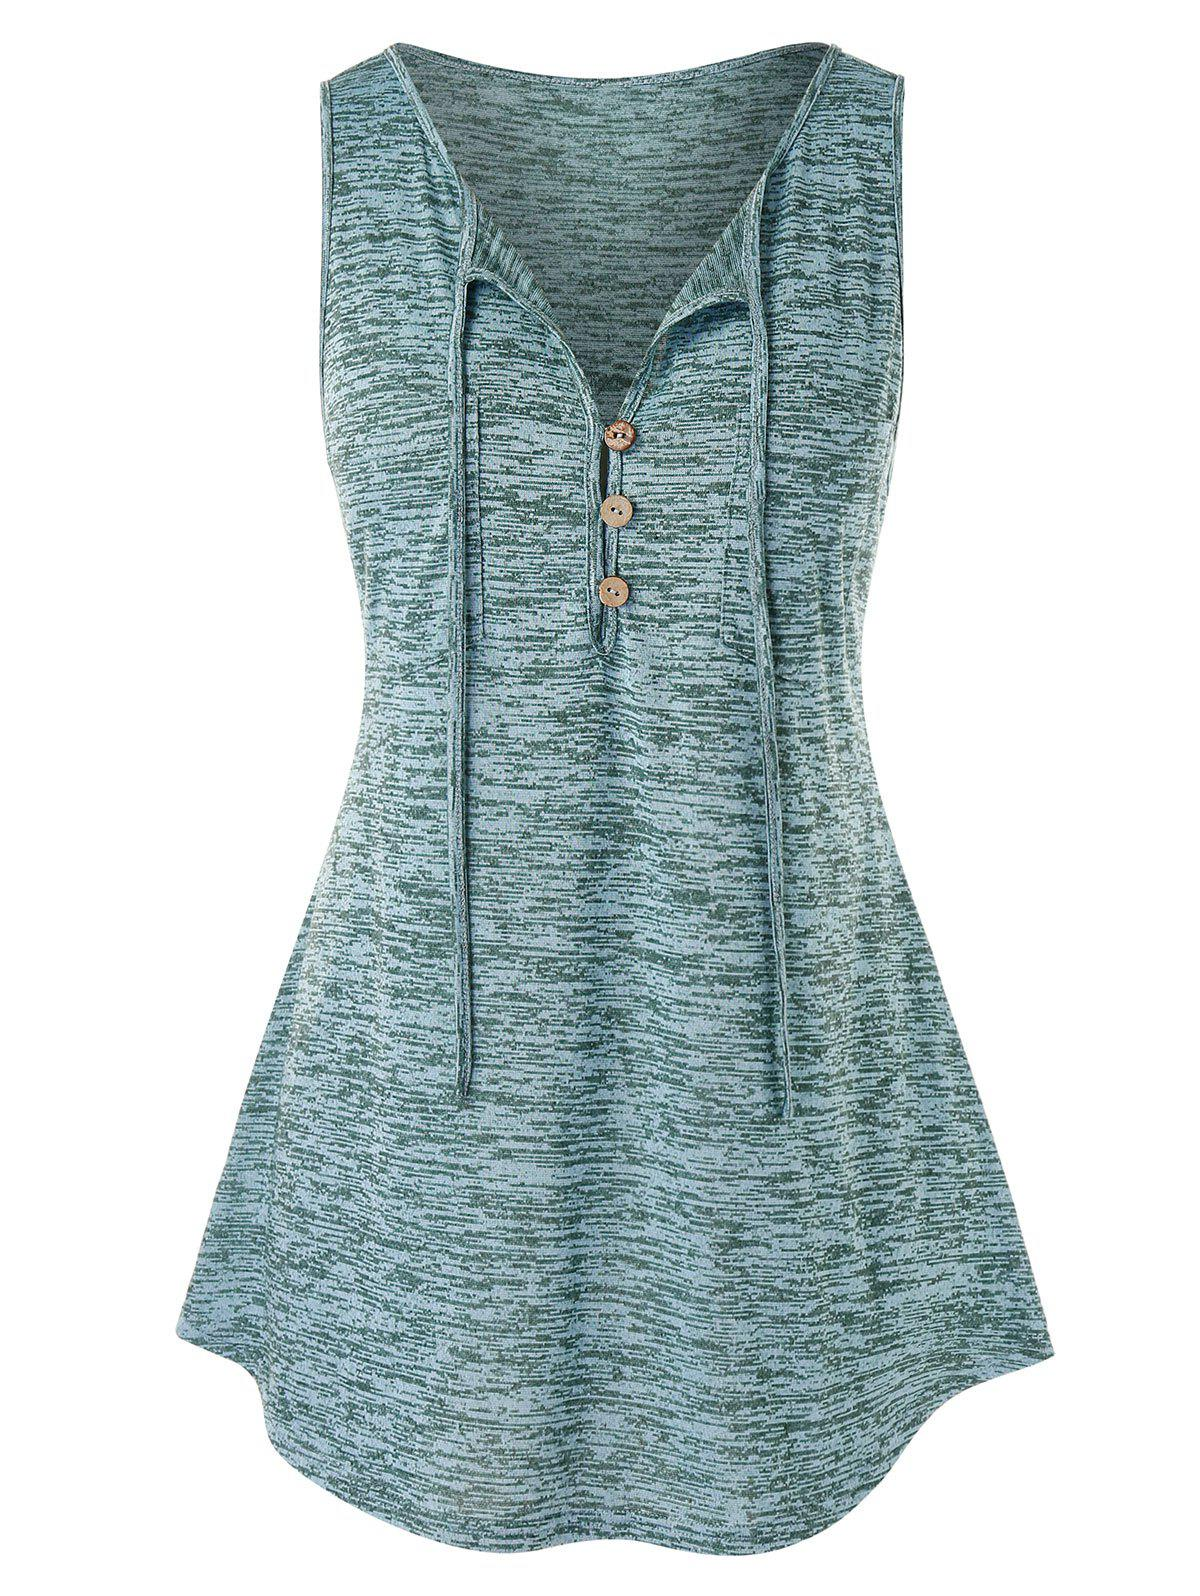 Plus Size Button Embellished Vest - MEDIUM TURQUOISE 3X